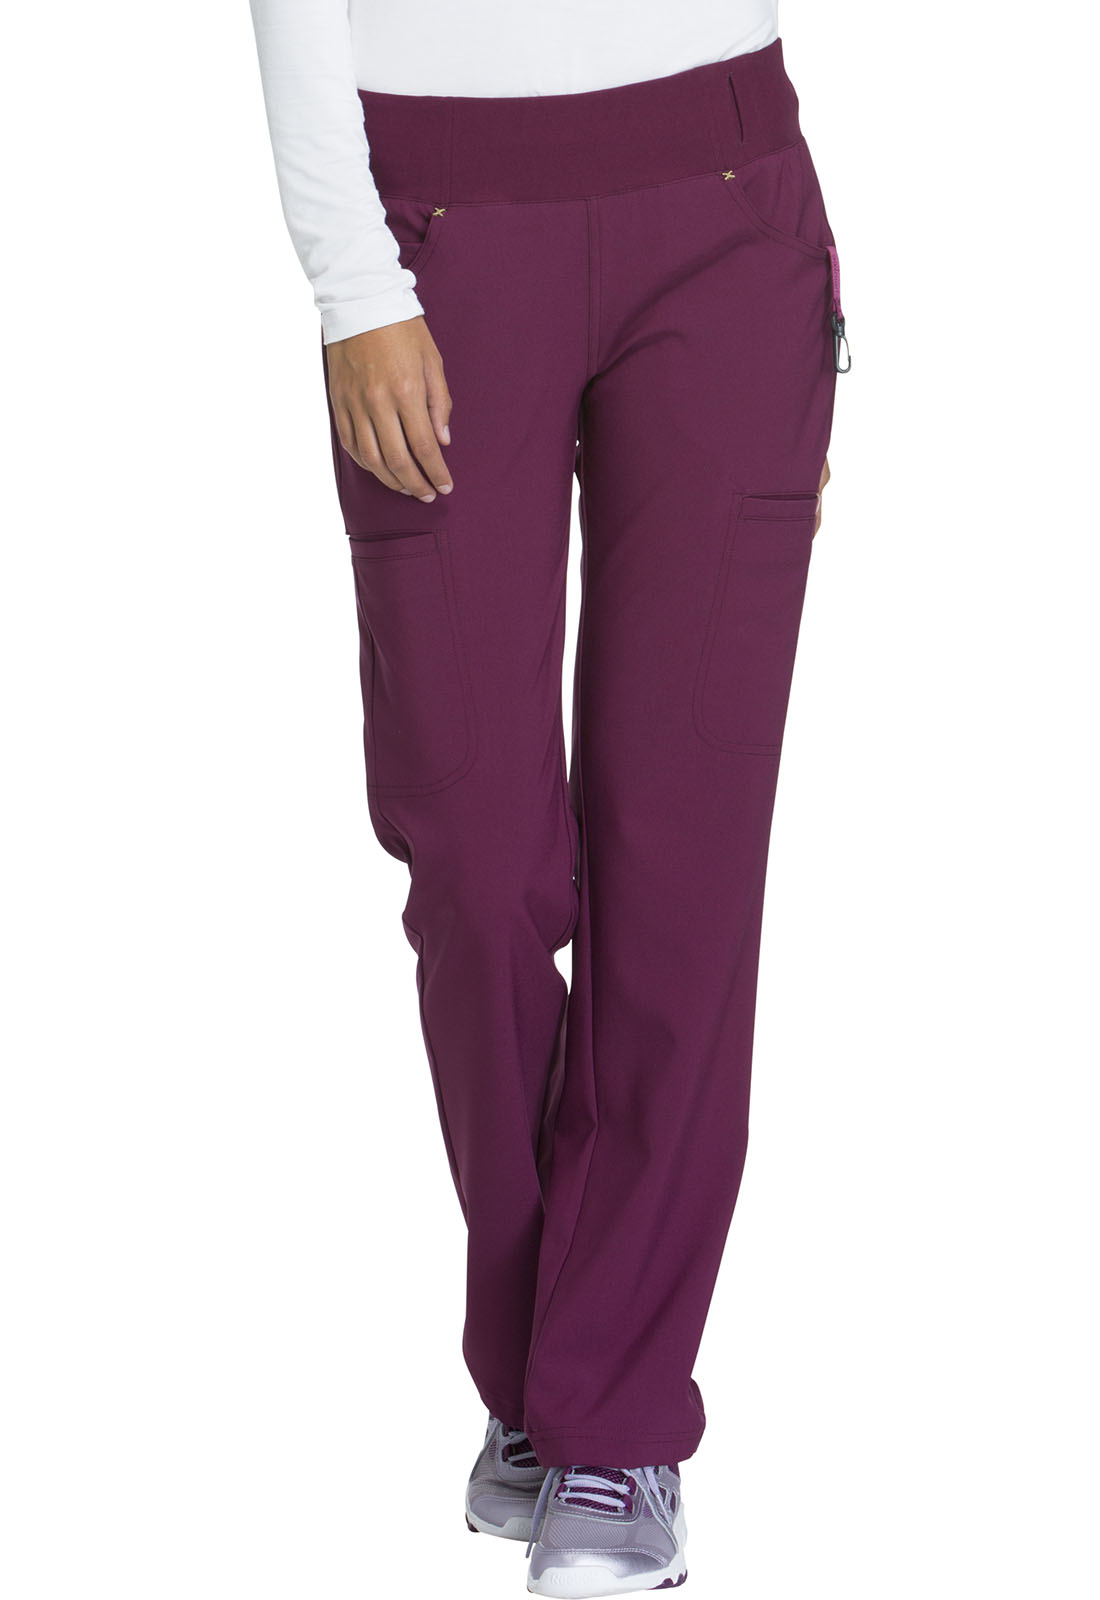 c0cb46bb89e iFlex Mid Rise Straight Leg Pull-on Pant in Wine CK002-WIN from ...